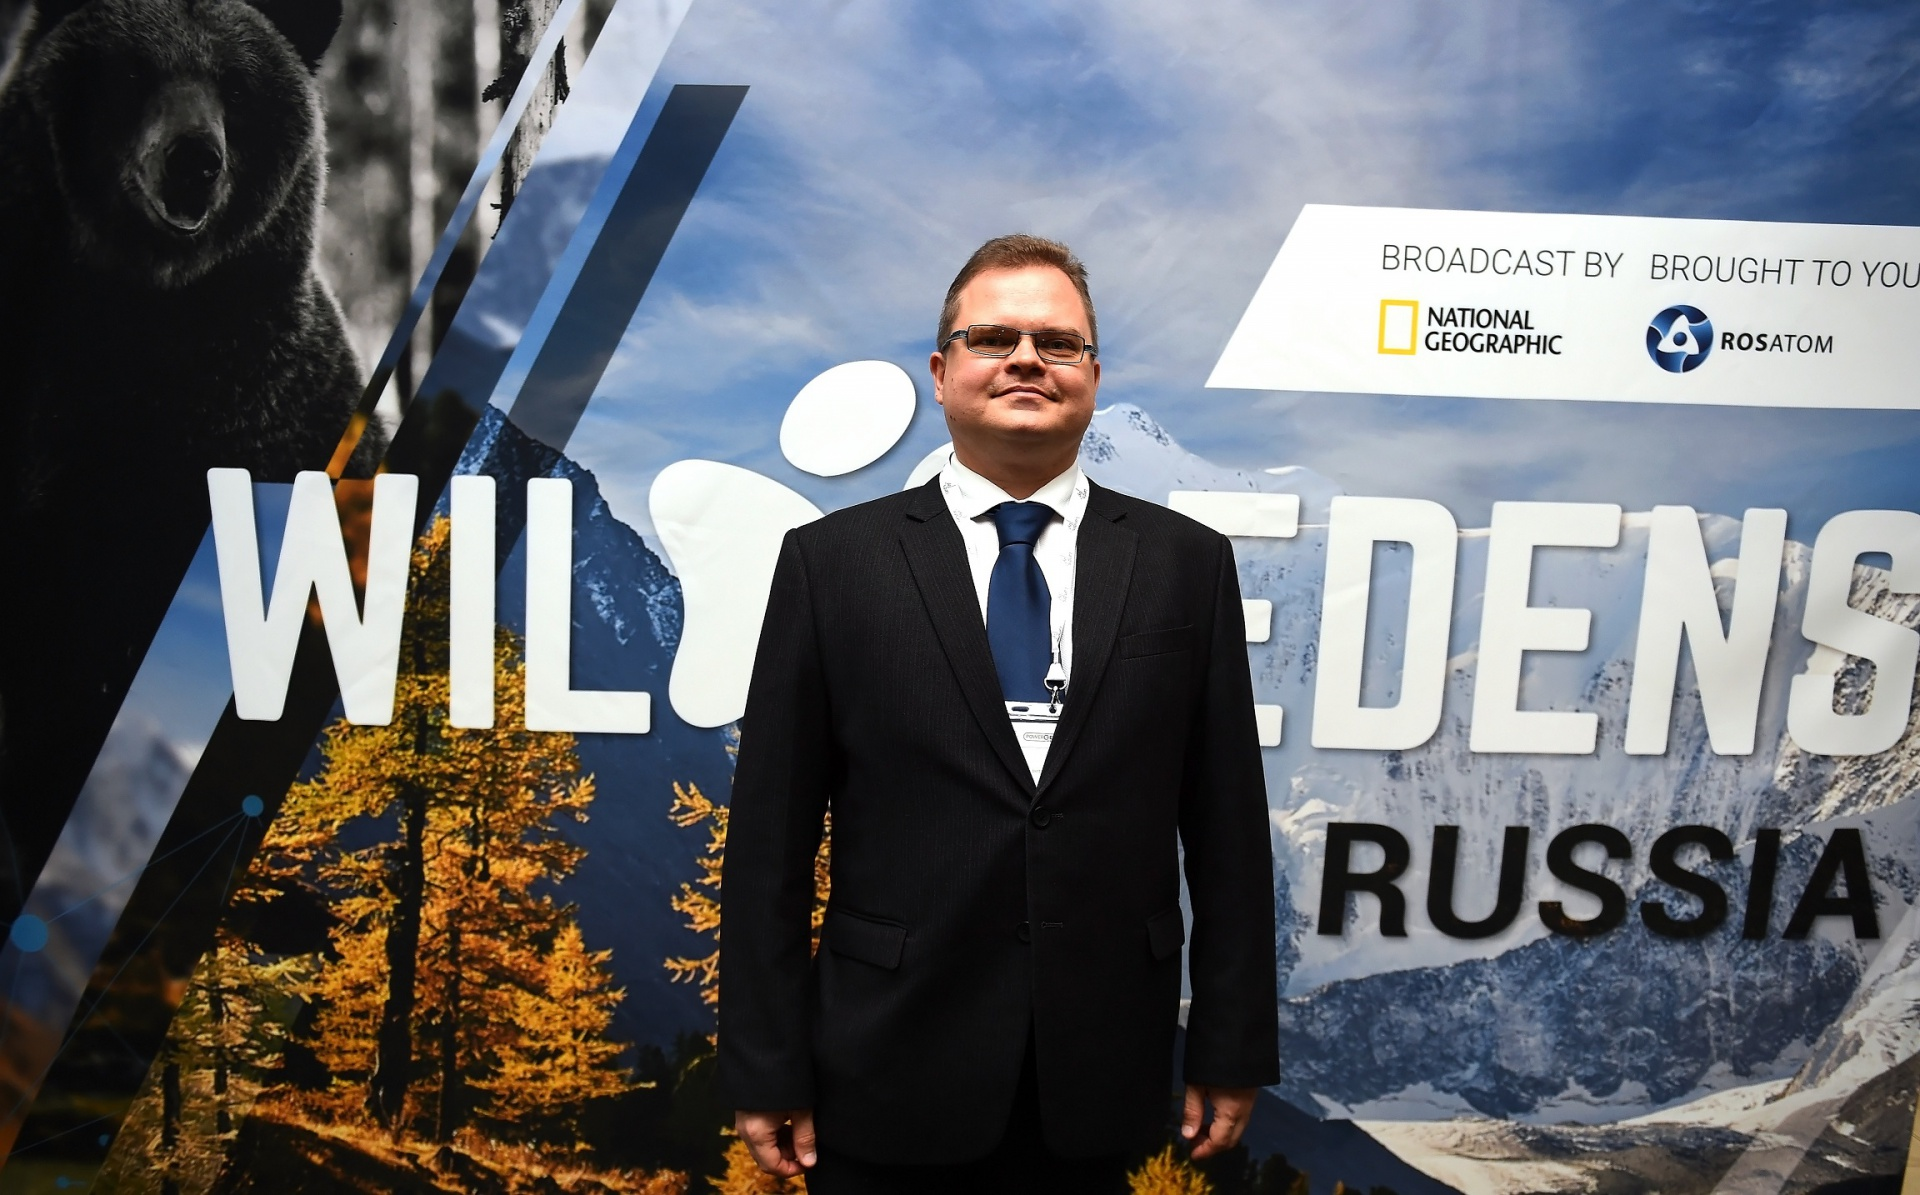 CEO of Rosatom Central and Southern Africa Dmitry Shornikov at Wild Edens screening